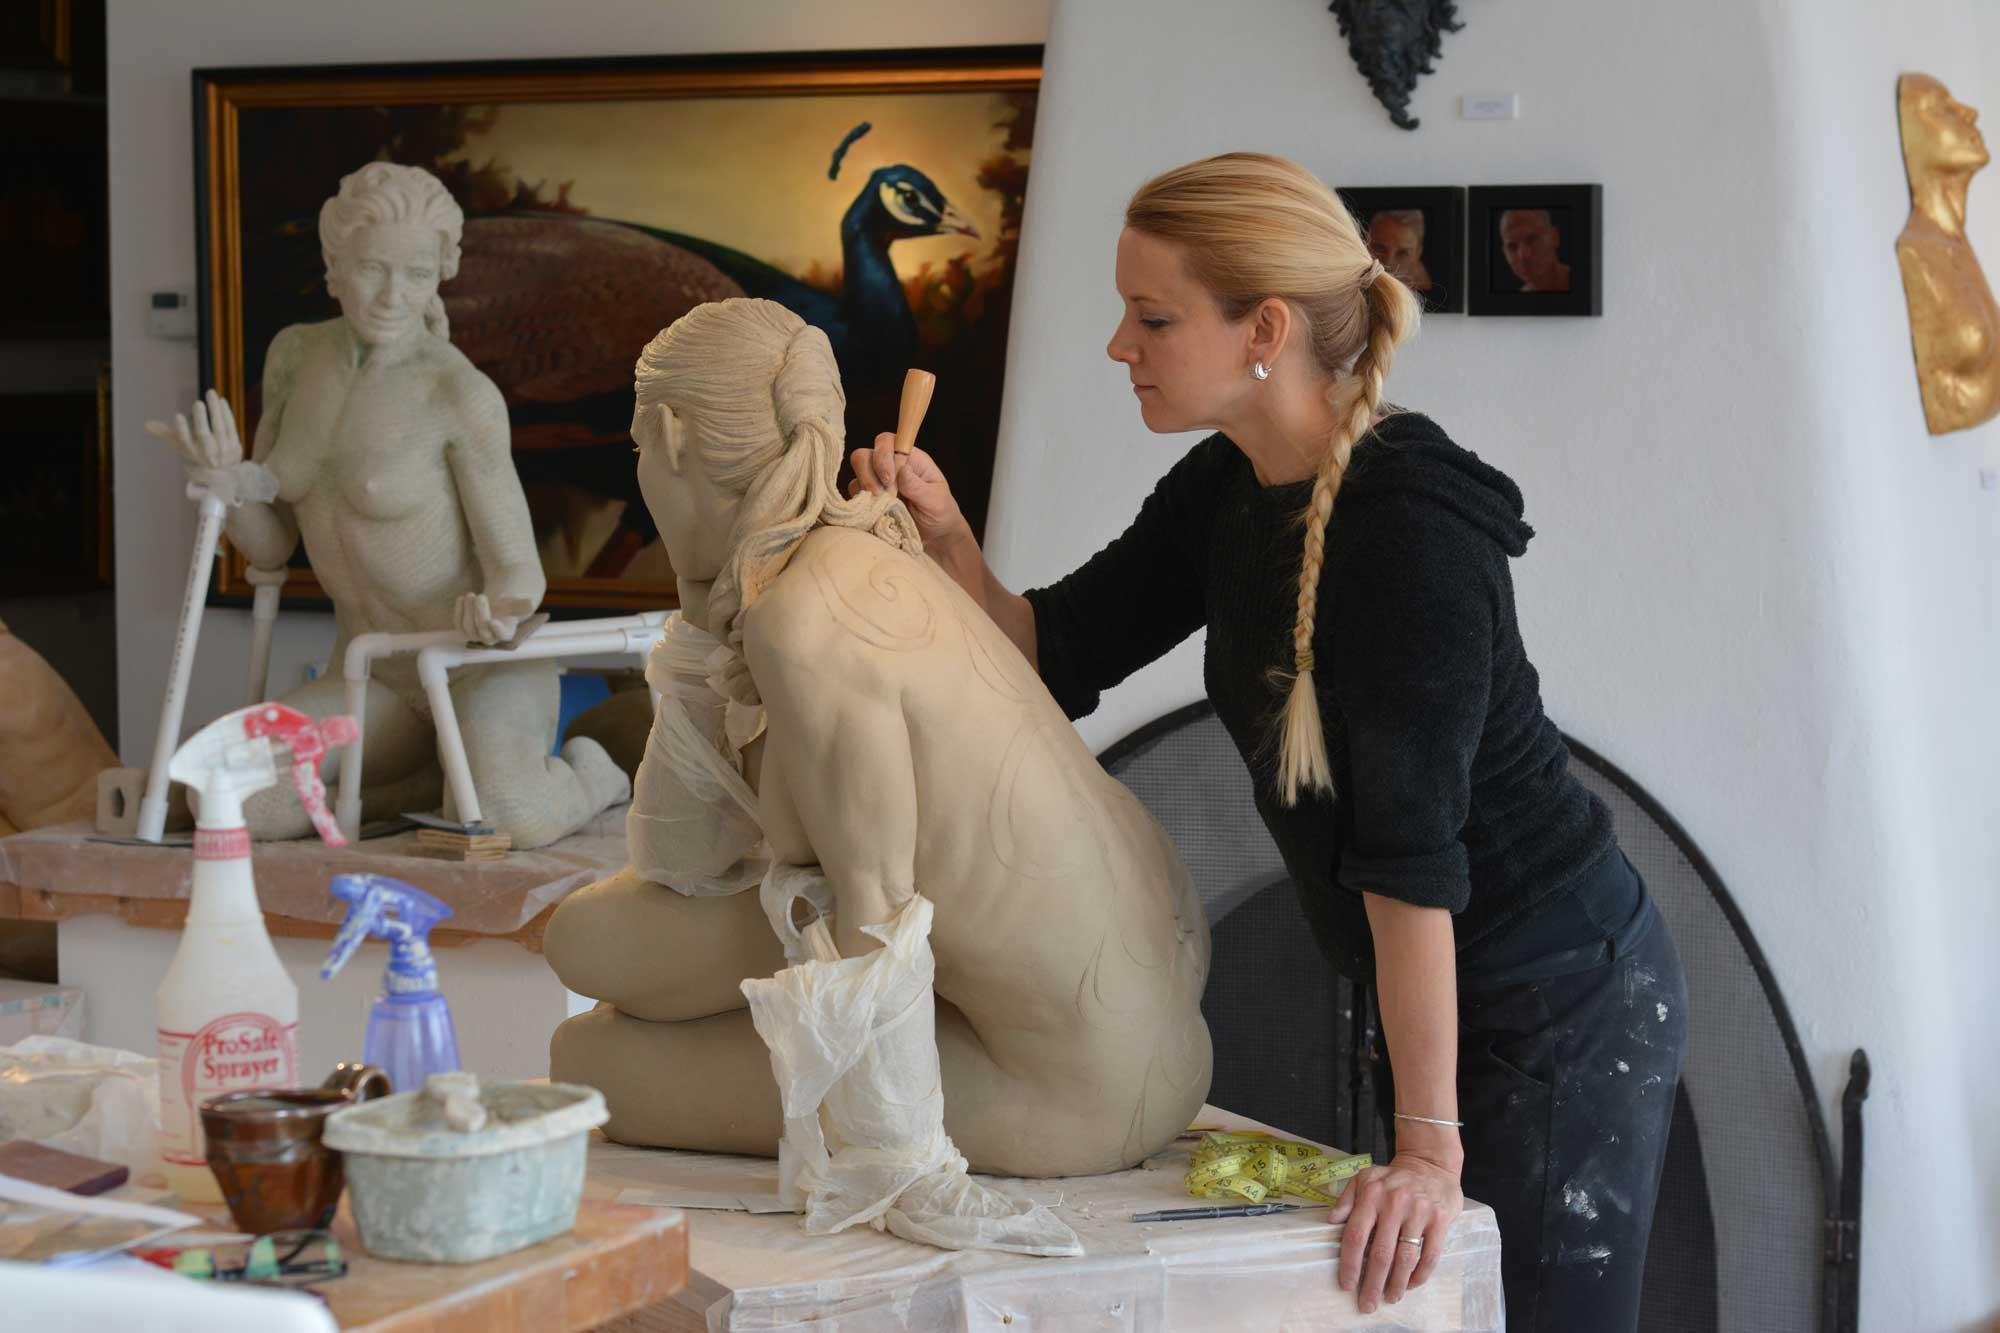 Kristine Poole working on one of her latest works.